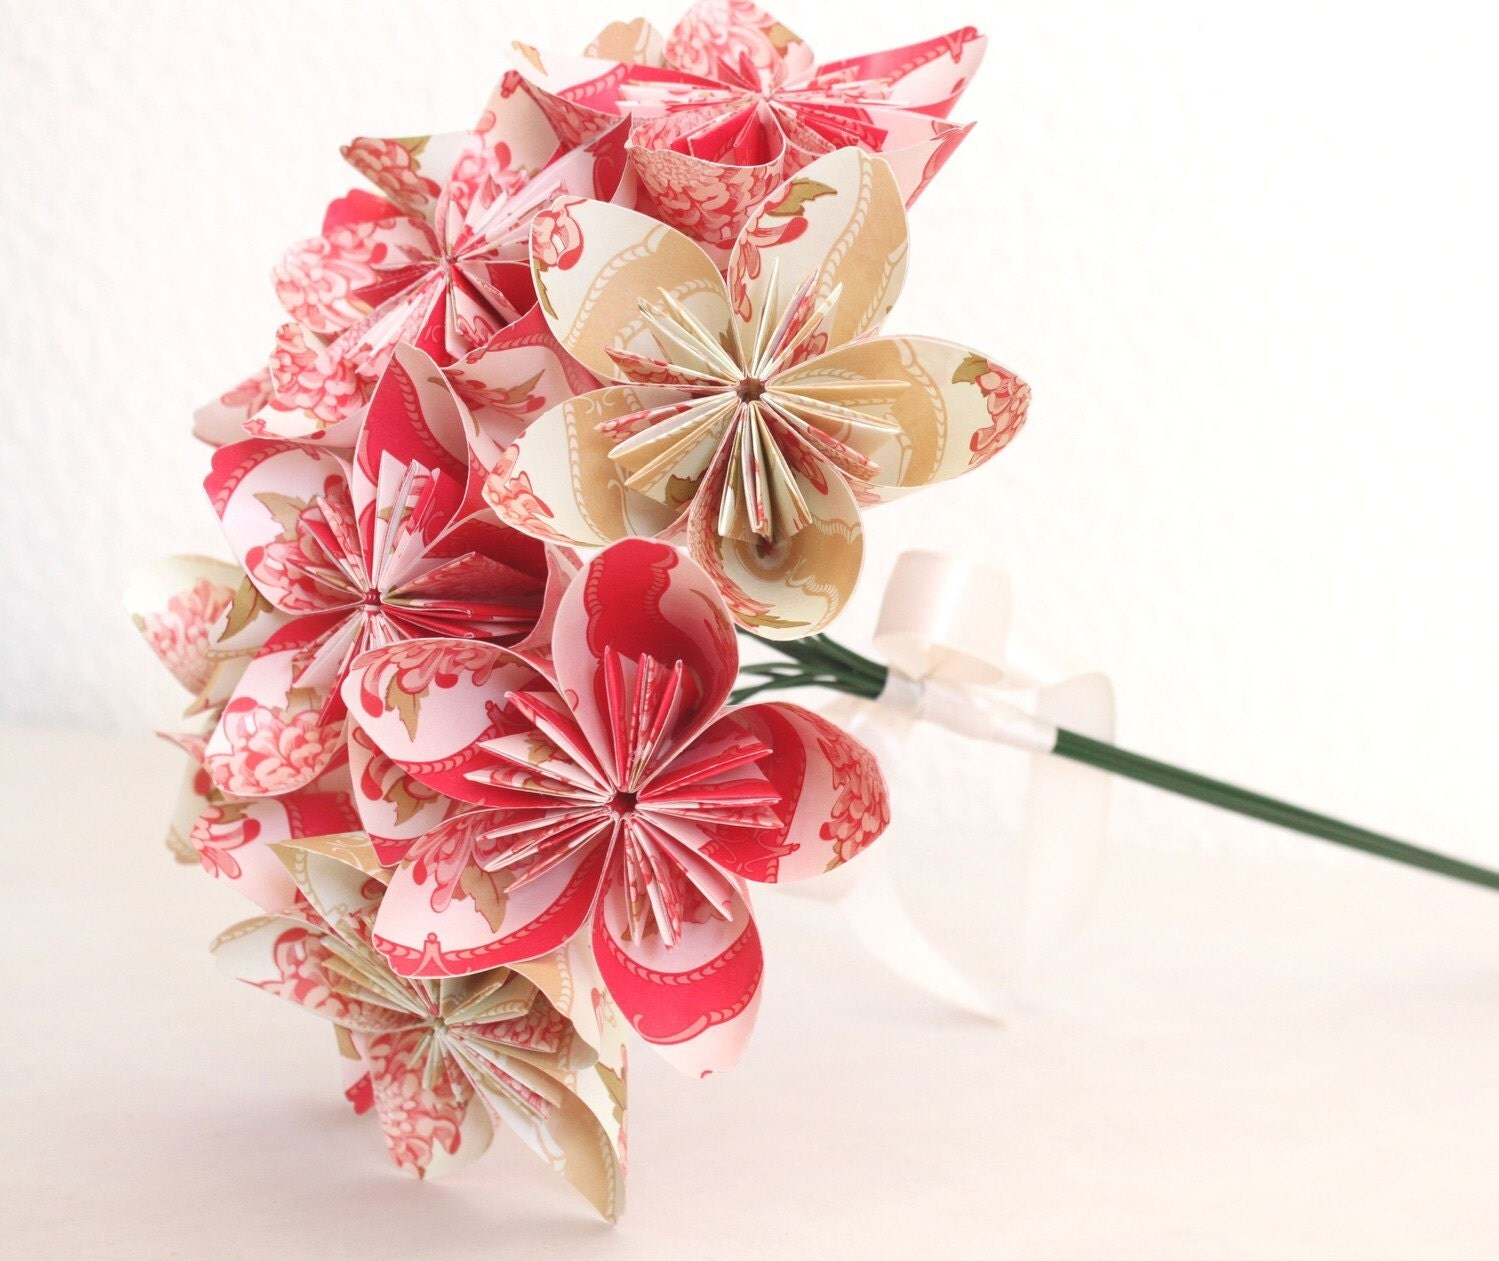 Origami Paper Flower Bouquet pink and beige